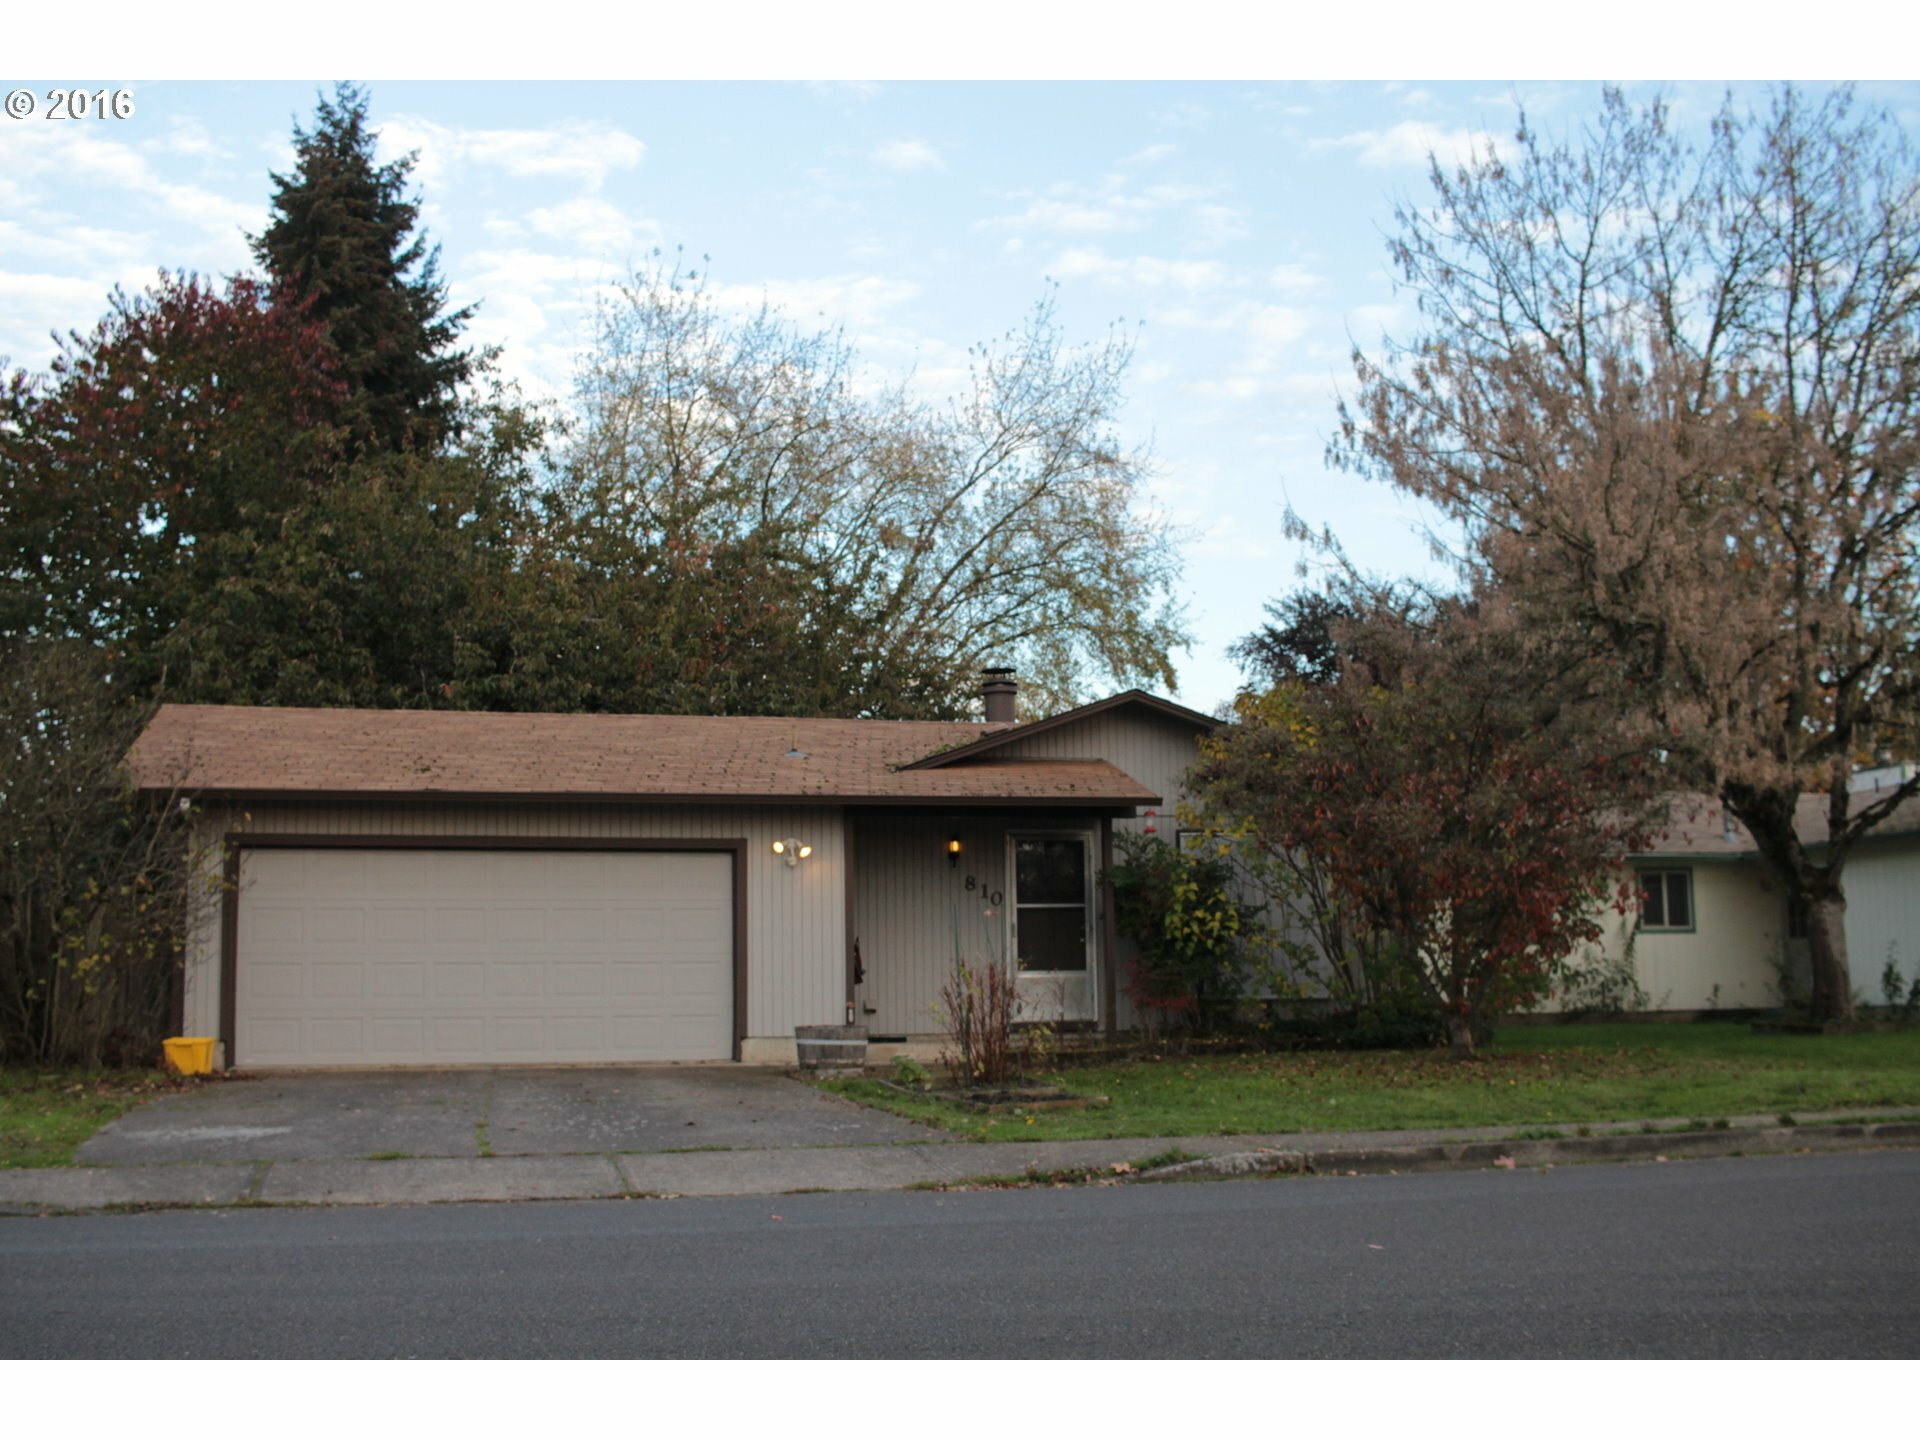 810 Birch St, Junction City, OR - USA (photo 1)